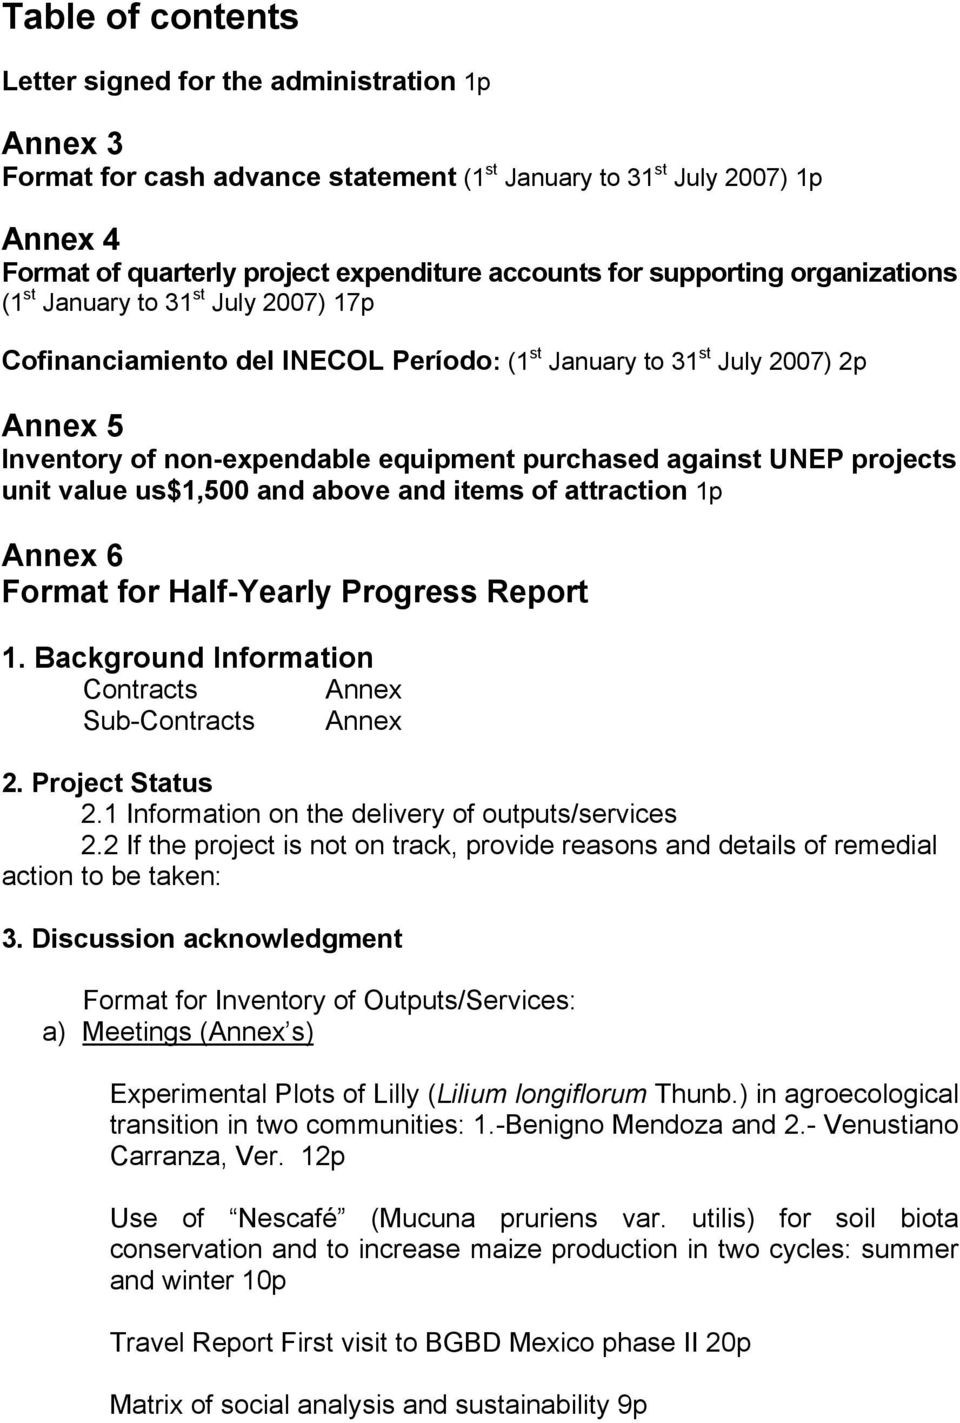 against UNEP projects unit value us$1,500 and above and items of attraction 1p Annex 6 Format for Half-Yearly Progress Report 1. Background Information Contracts Annex Sub-Contracts Annex 2.